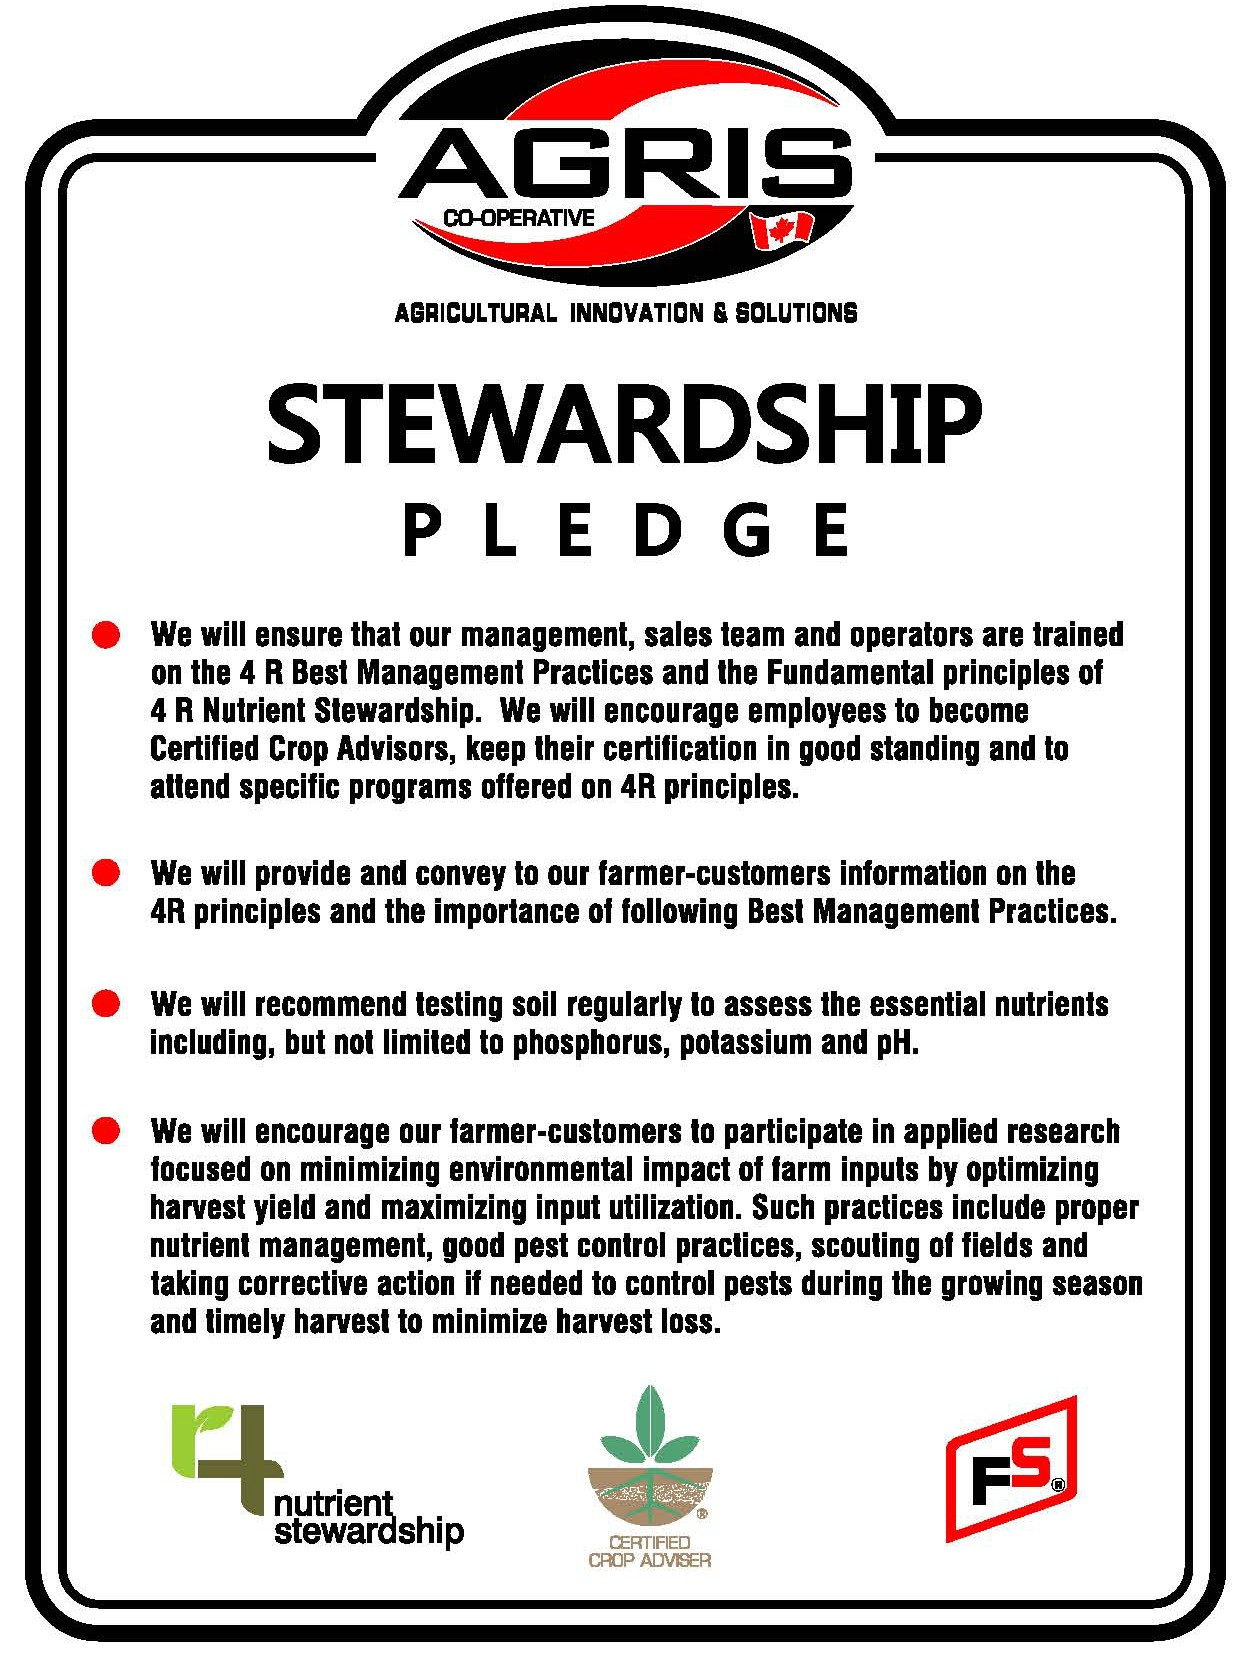 agrisstewardship pledge